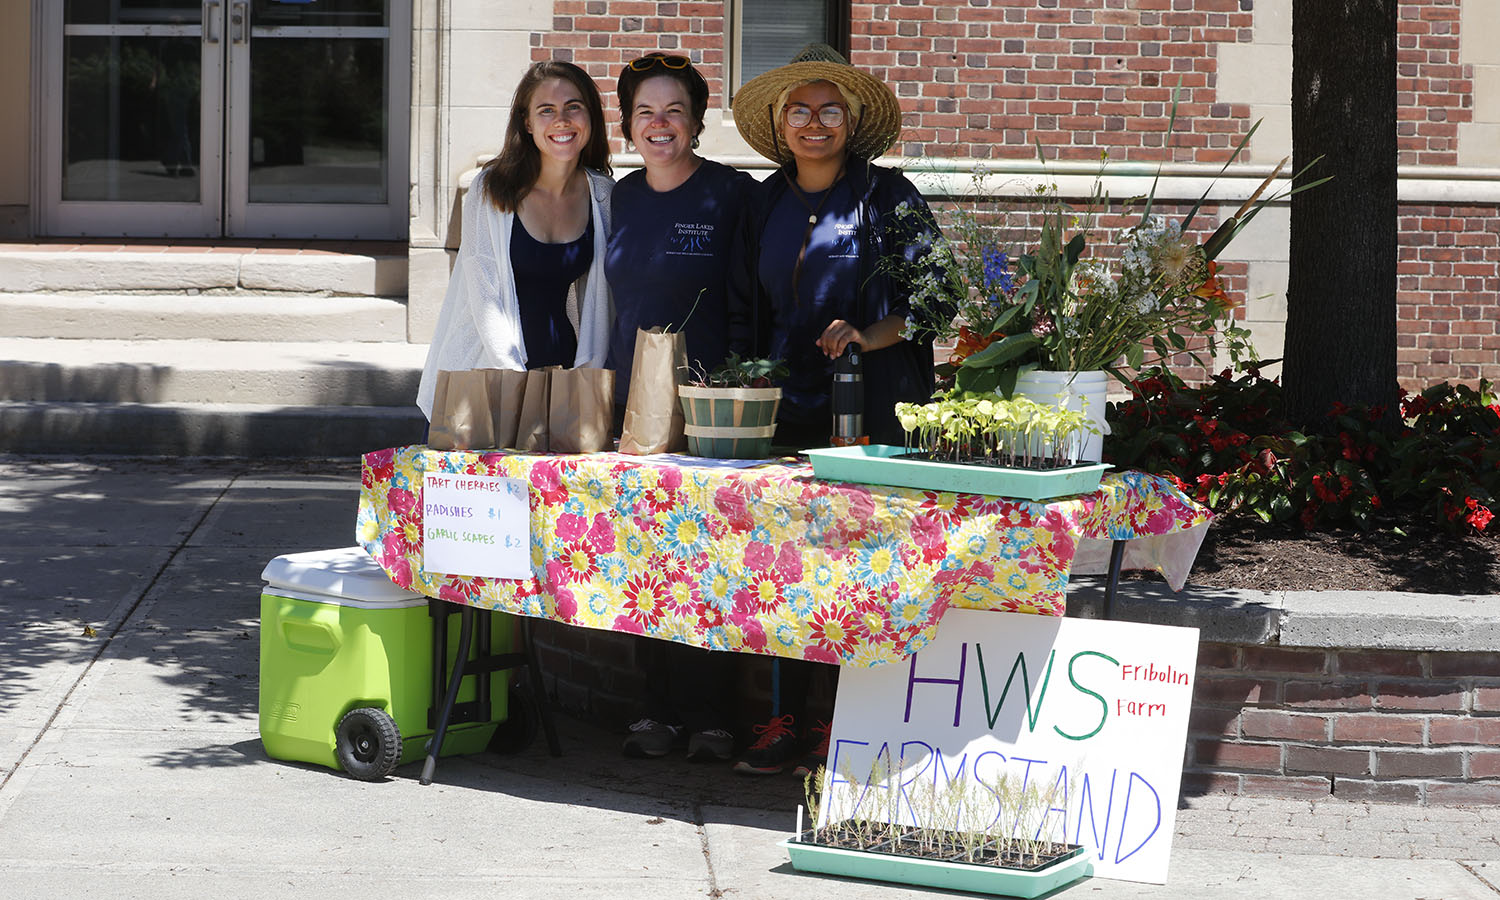 Finger Lakes Institute (FLI) Pulse Project Intern Lara Johnson '19, FLI Food Systems Program Manager Sarah Meyer, and HWS Fribolin Farm Intern Sarah Garcia '17 work together at the summer 2016 weekly HWS Farmstand selling campus grown produce.